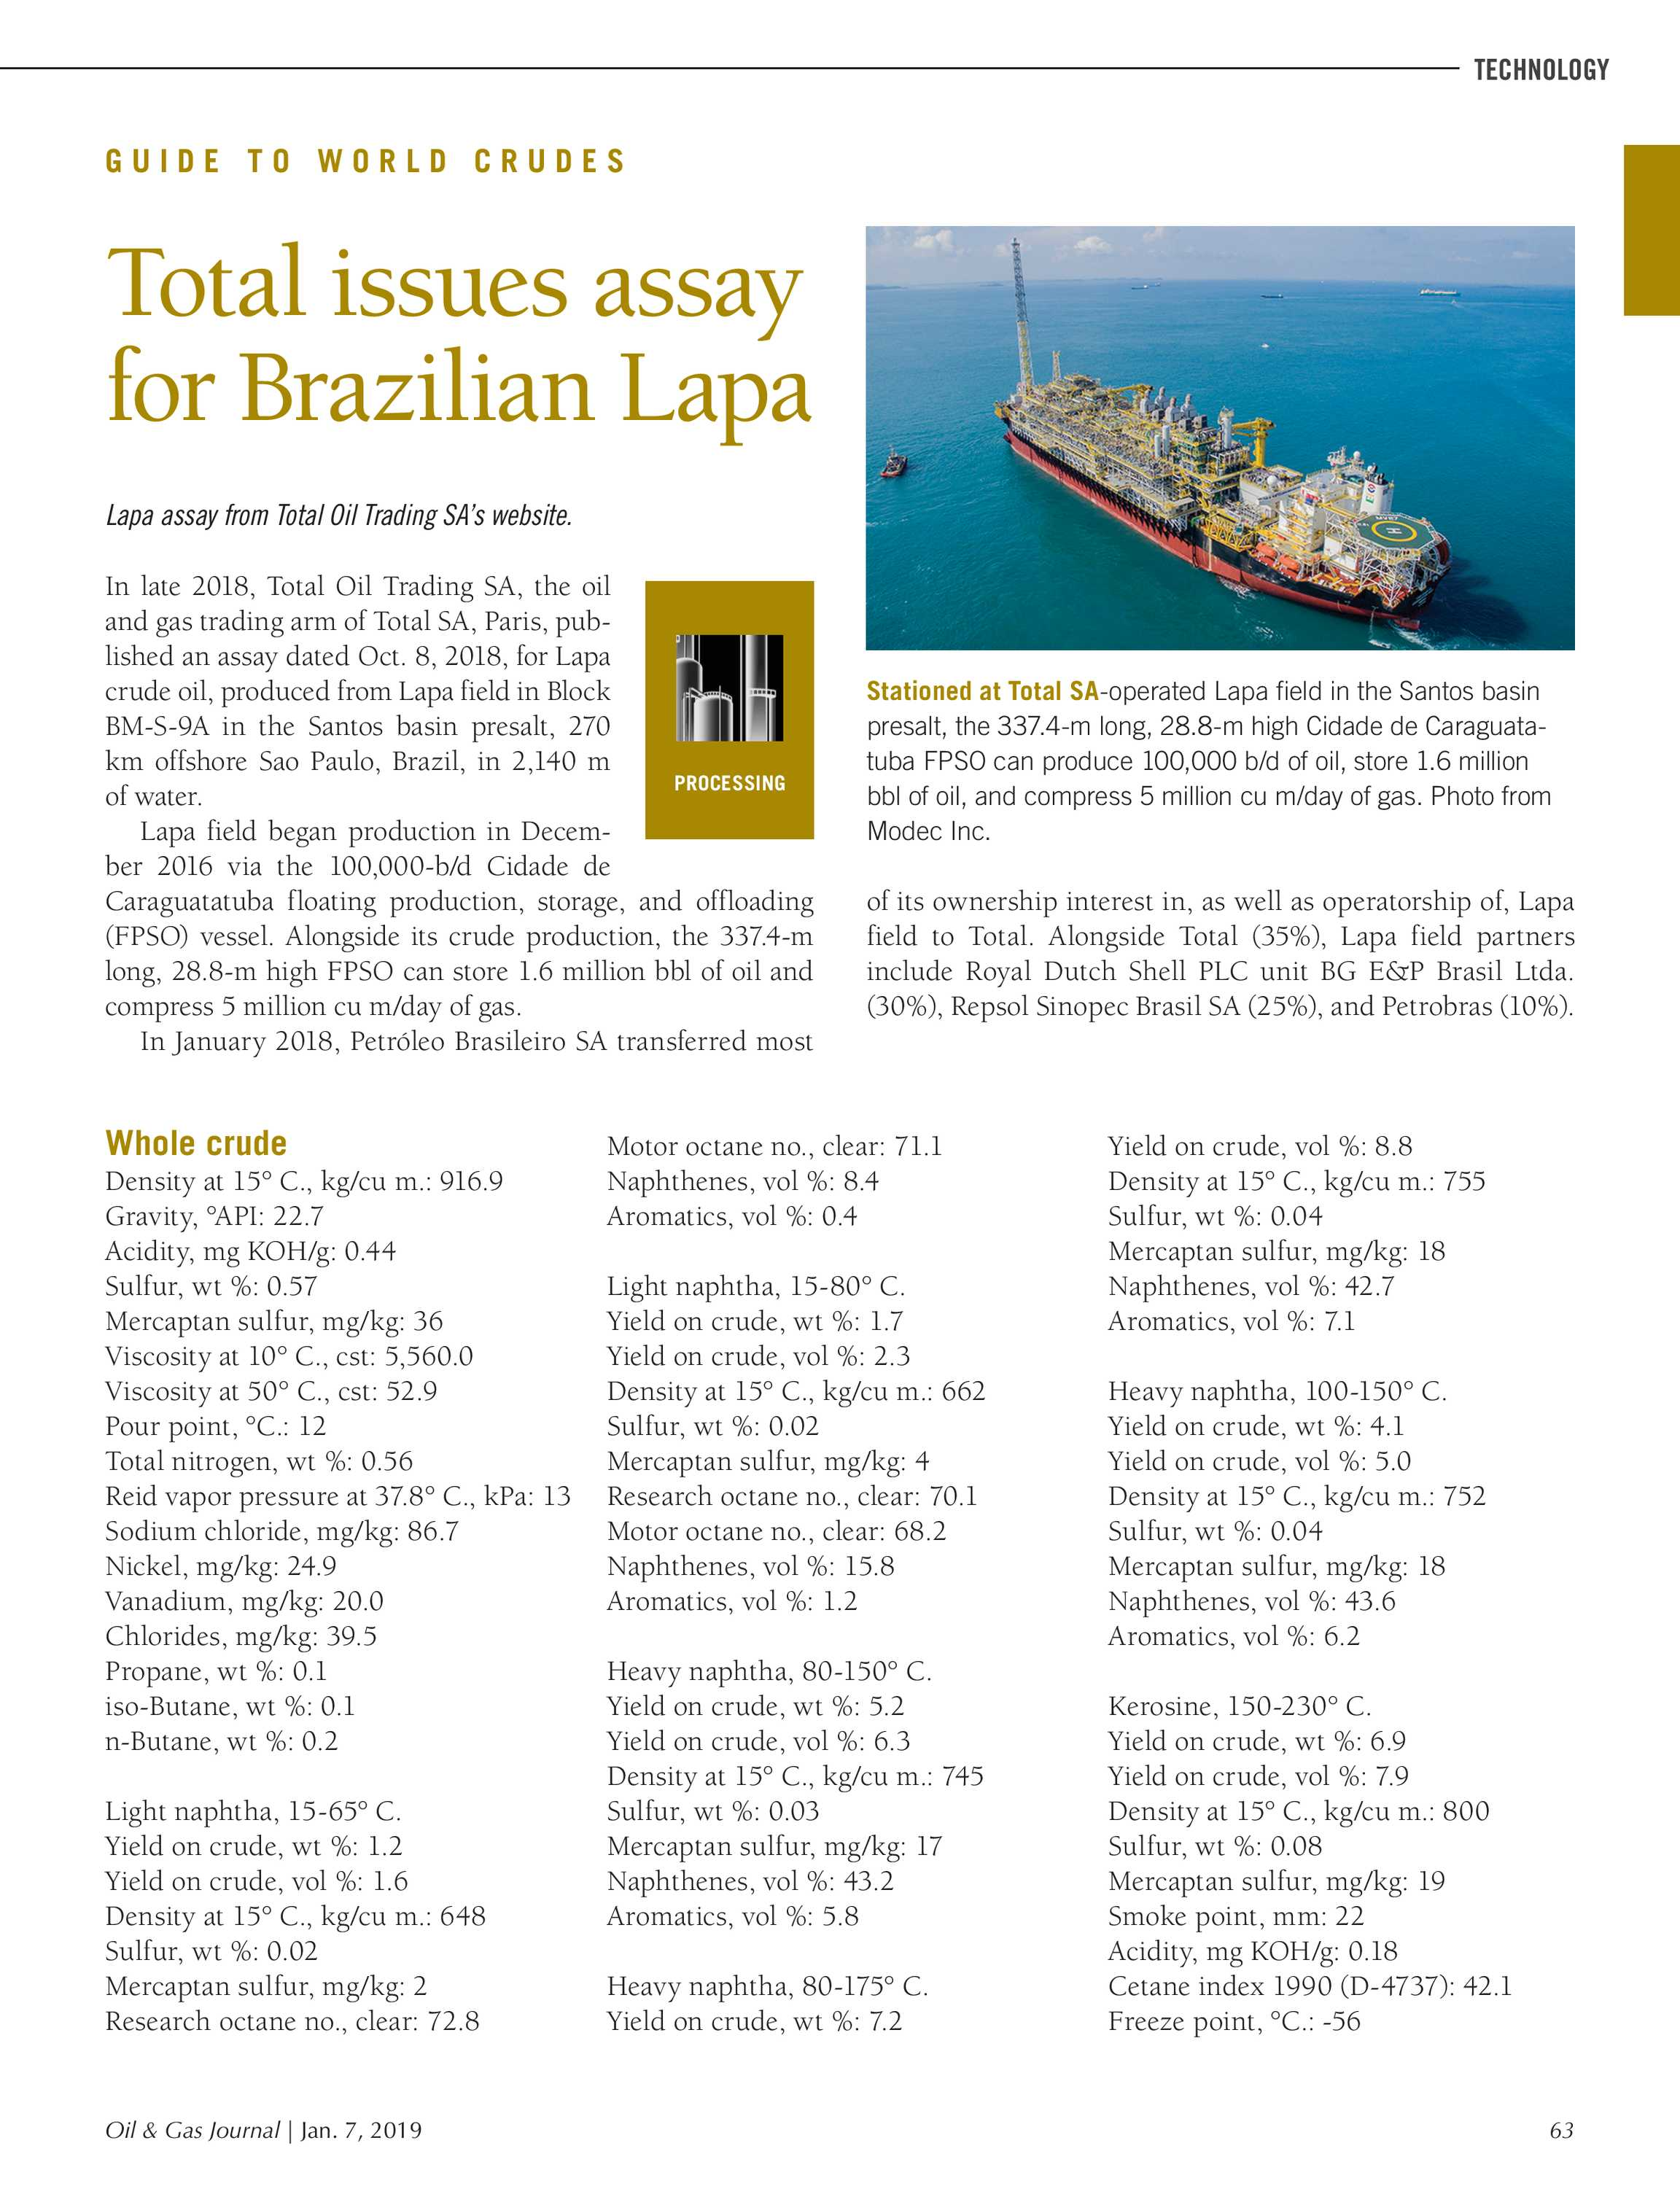 Oil & Gas Journal - January 7, 2019 - page 63